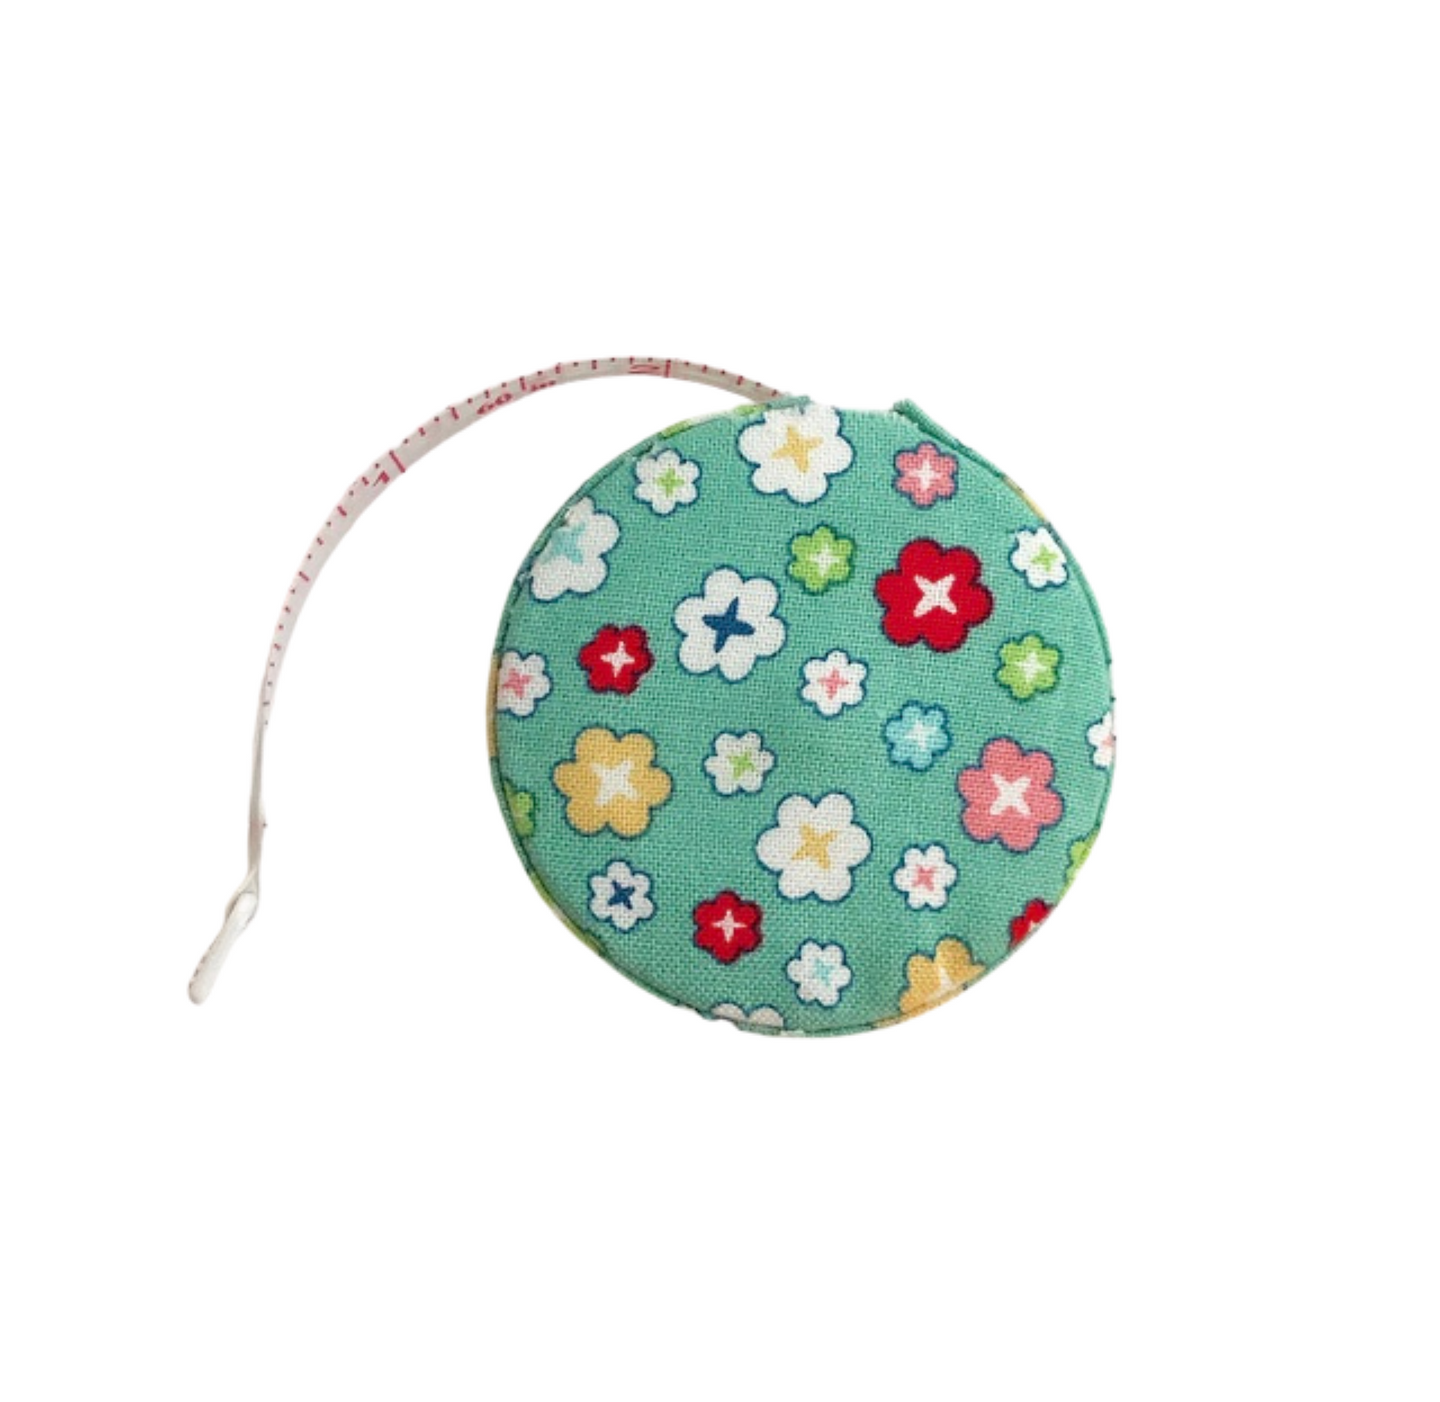 Fabric Covered Tape Measure - Teal with Flowers